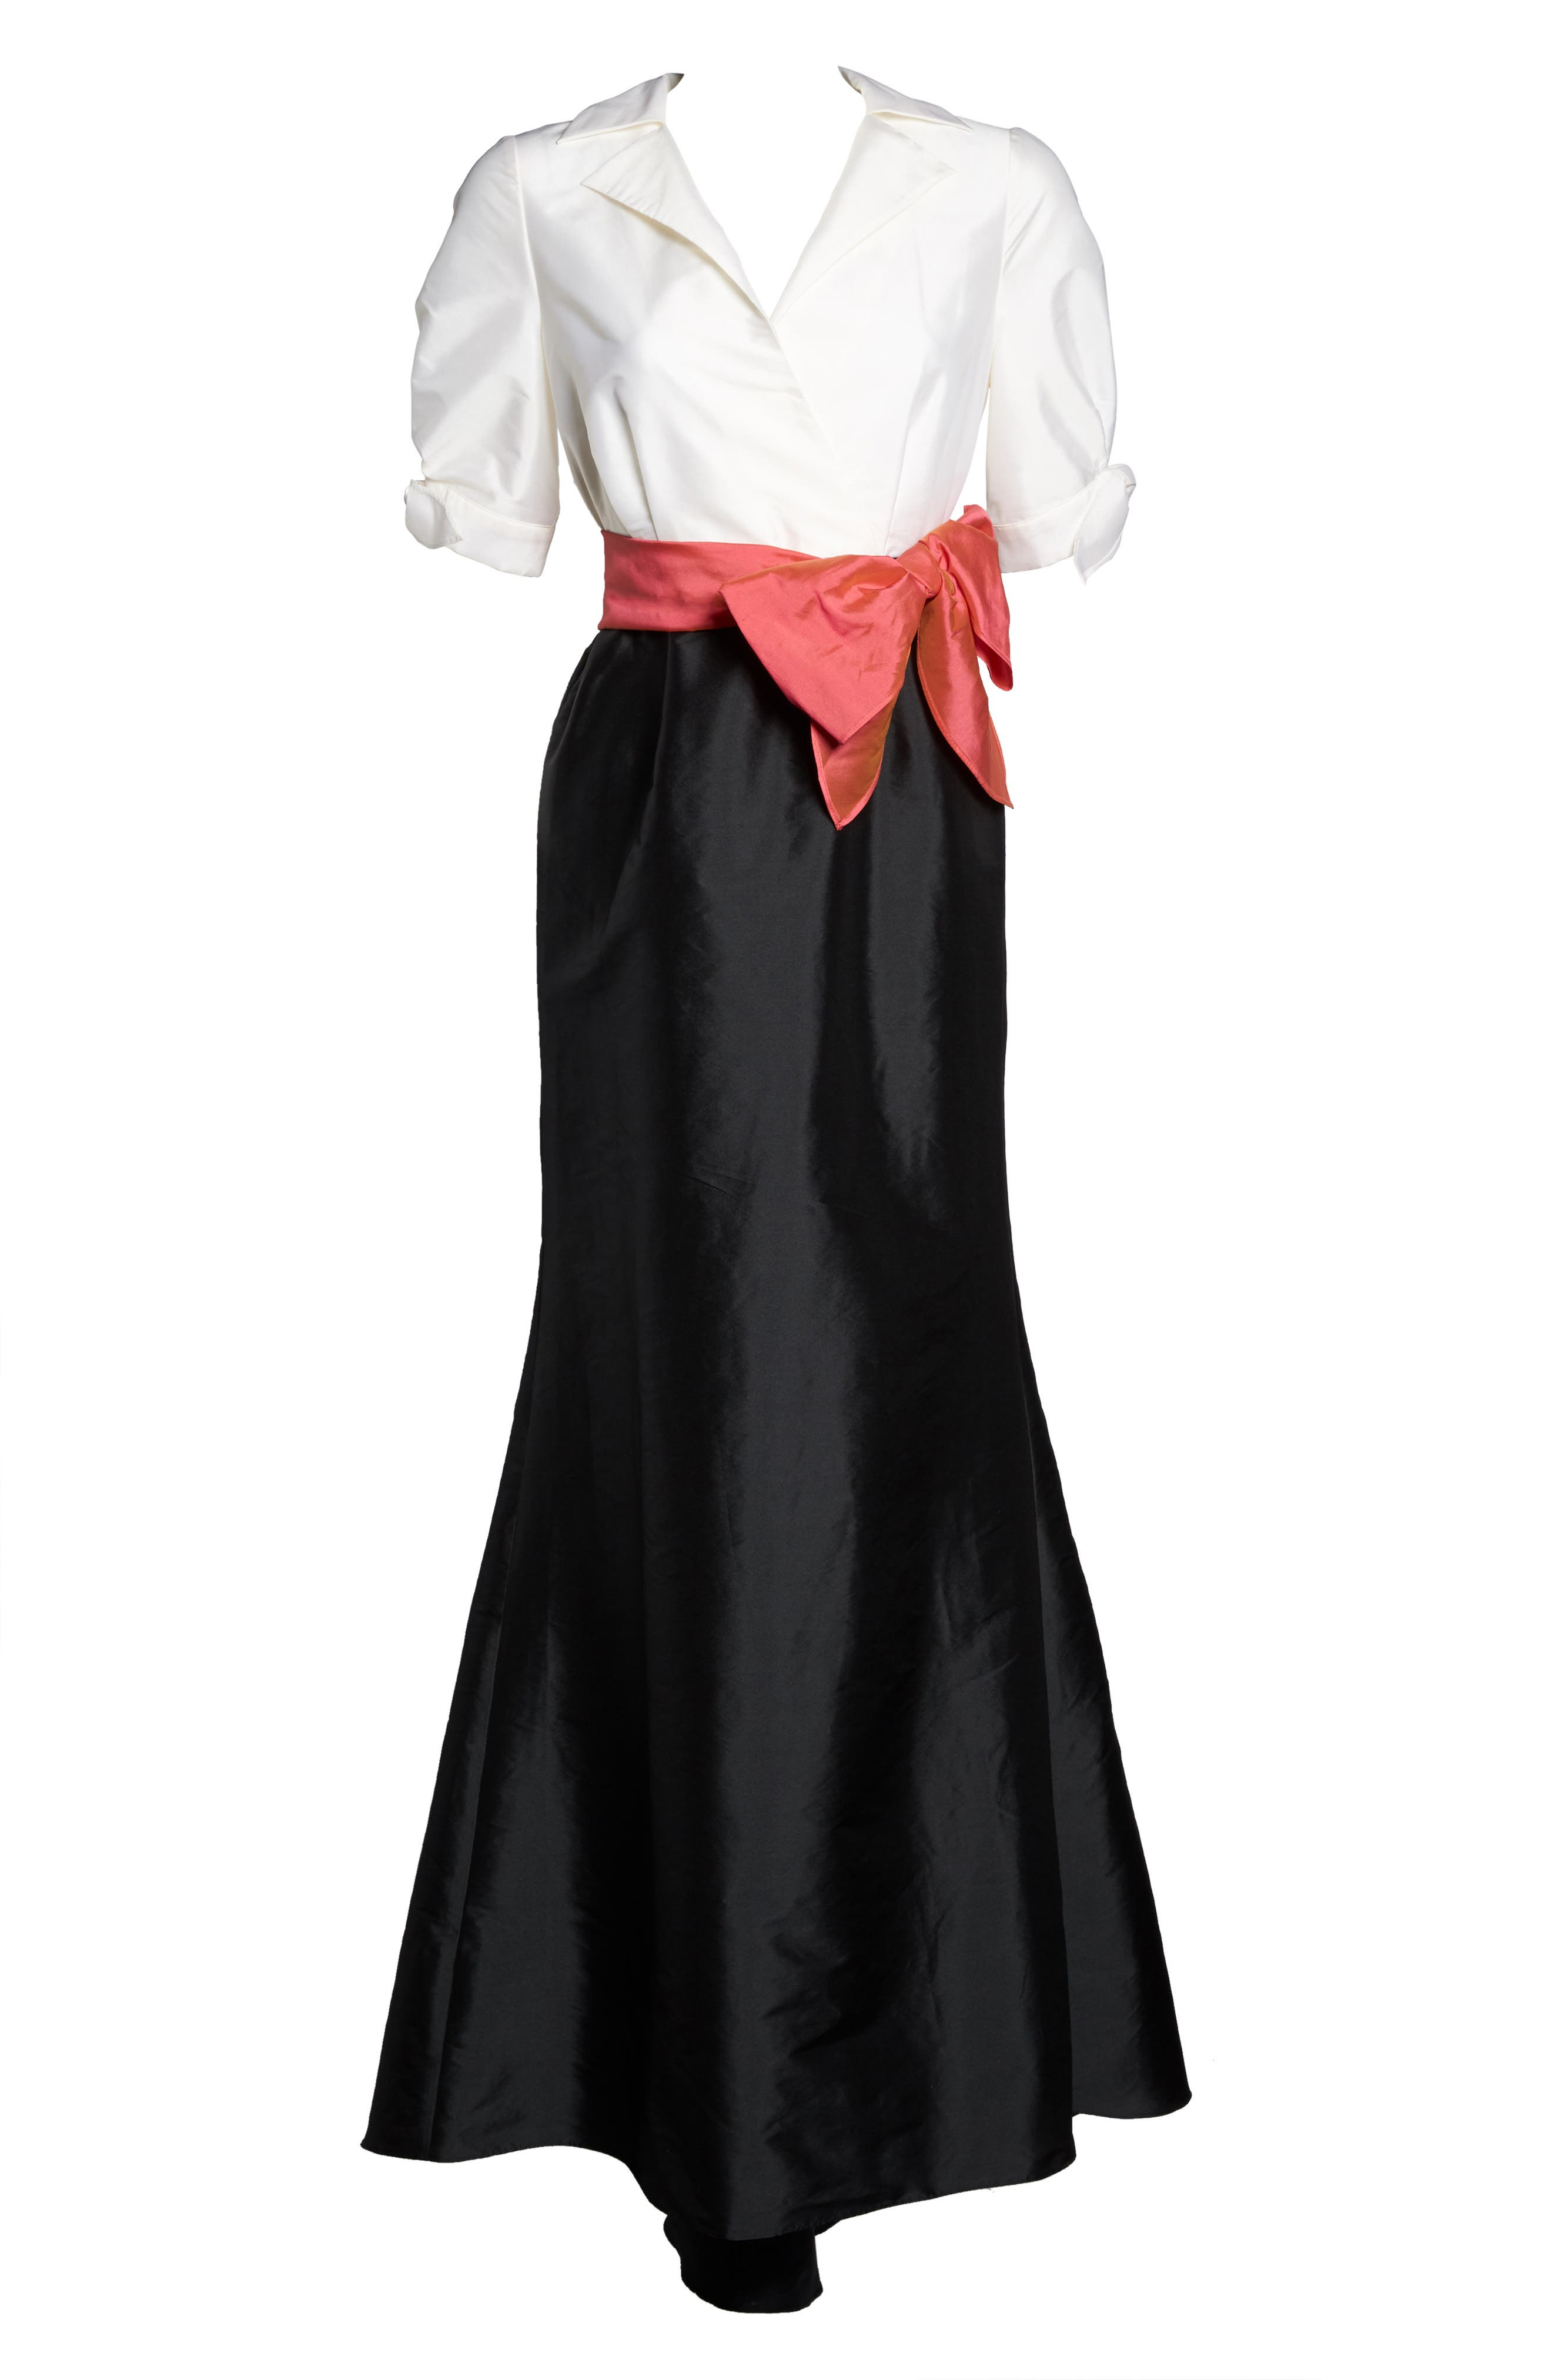 Adrianna Pappell Taffeta Mermaid Gown with Train,                             Alternate thumbnail 6, color,                             001